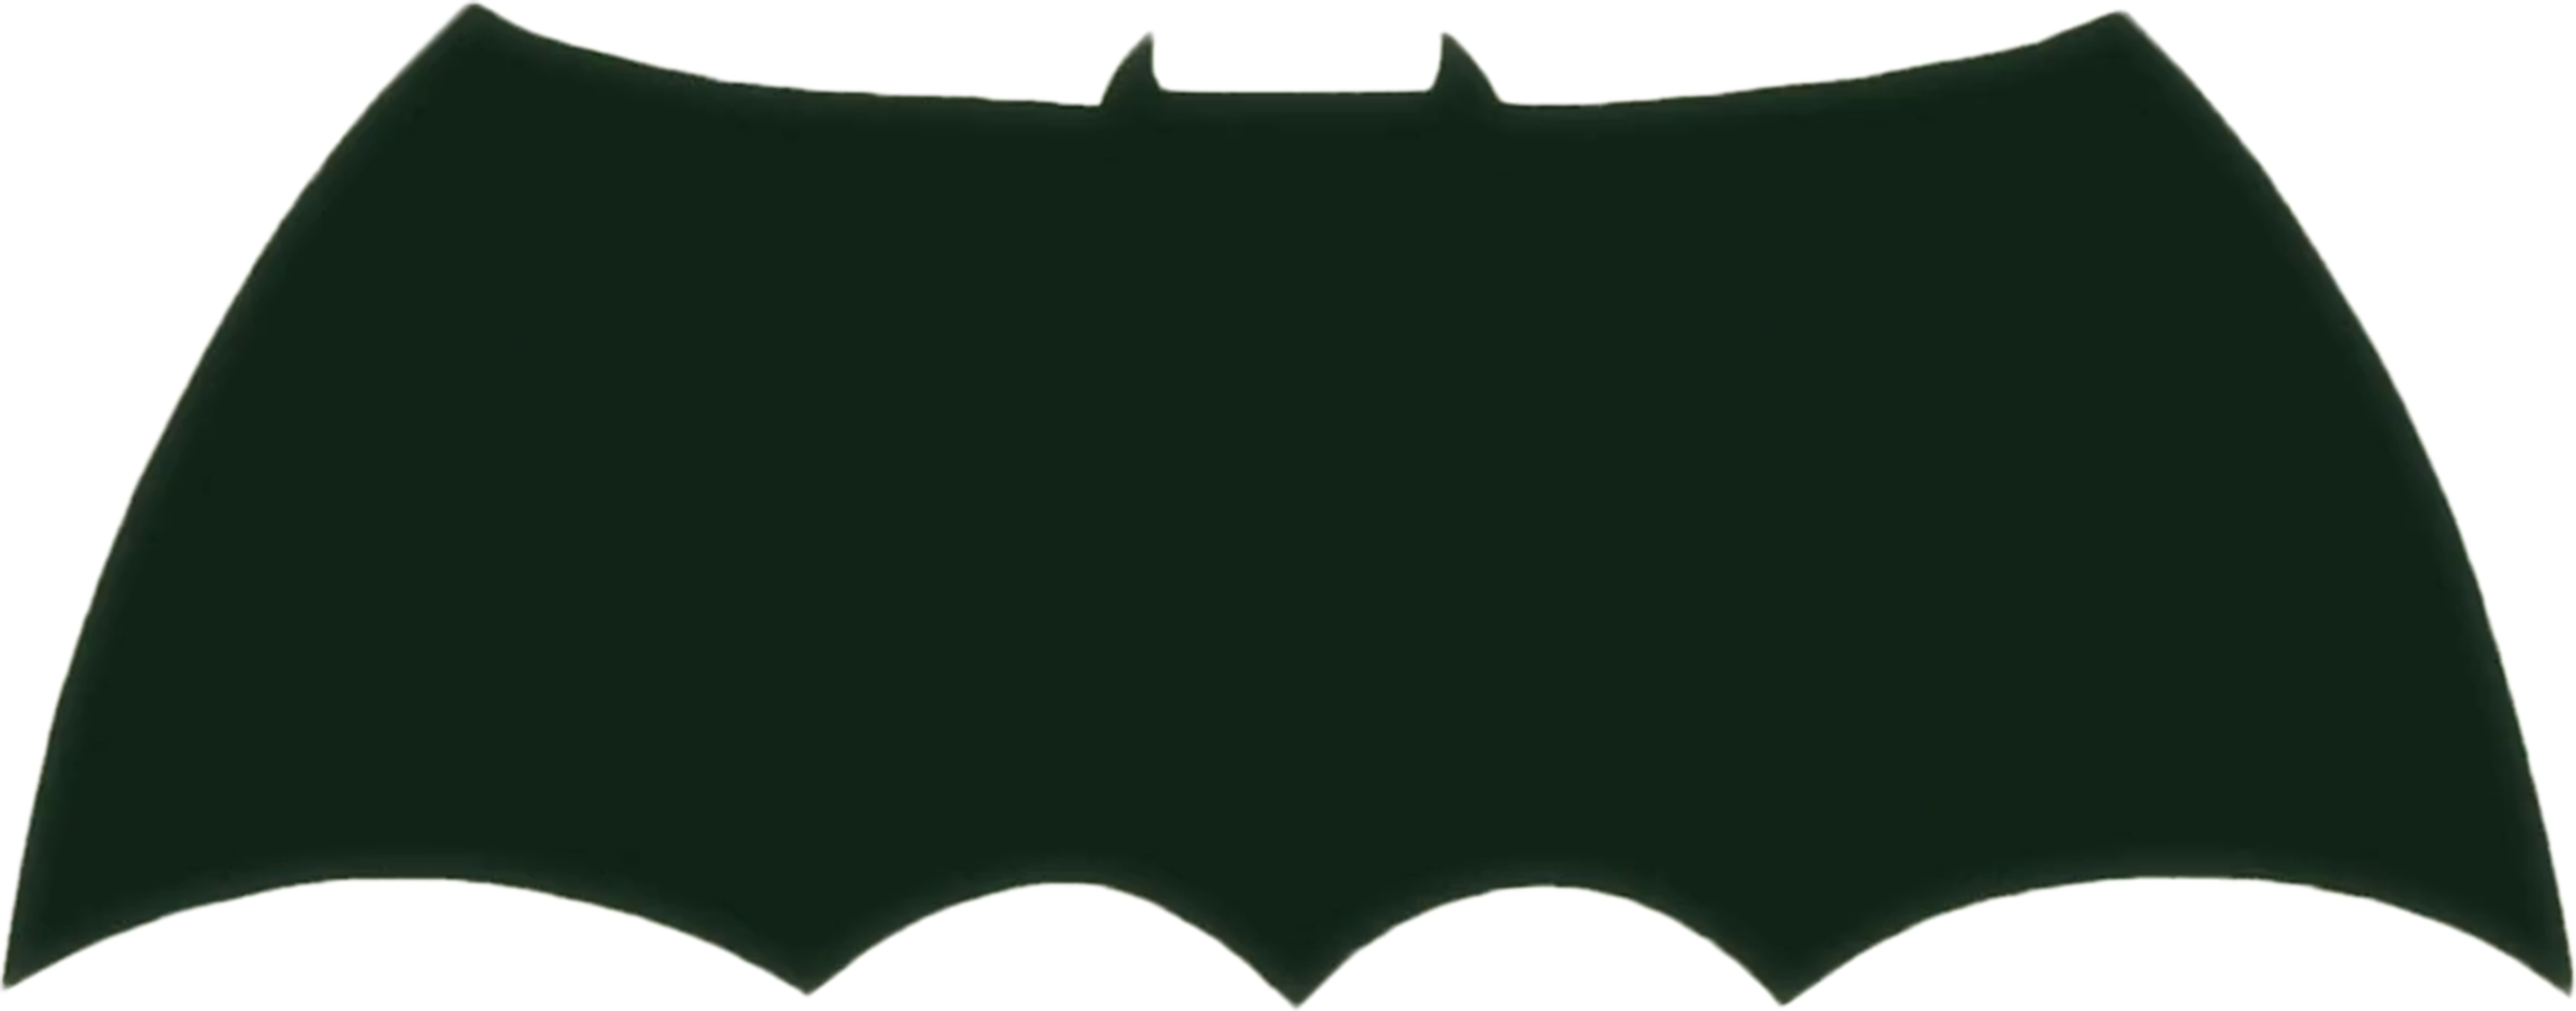 Batman Symbol The Dark Knight - ClipArt Best